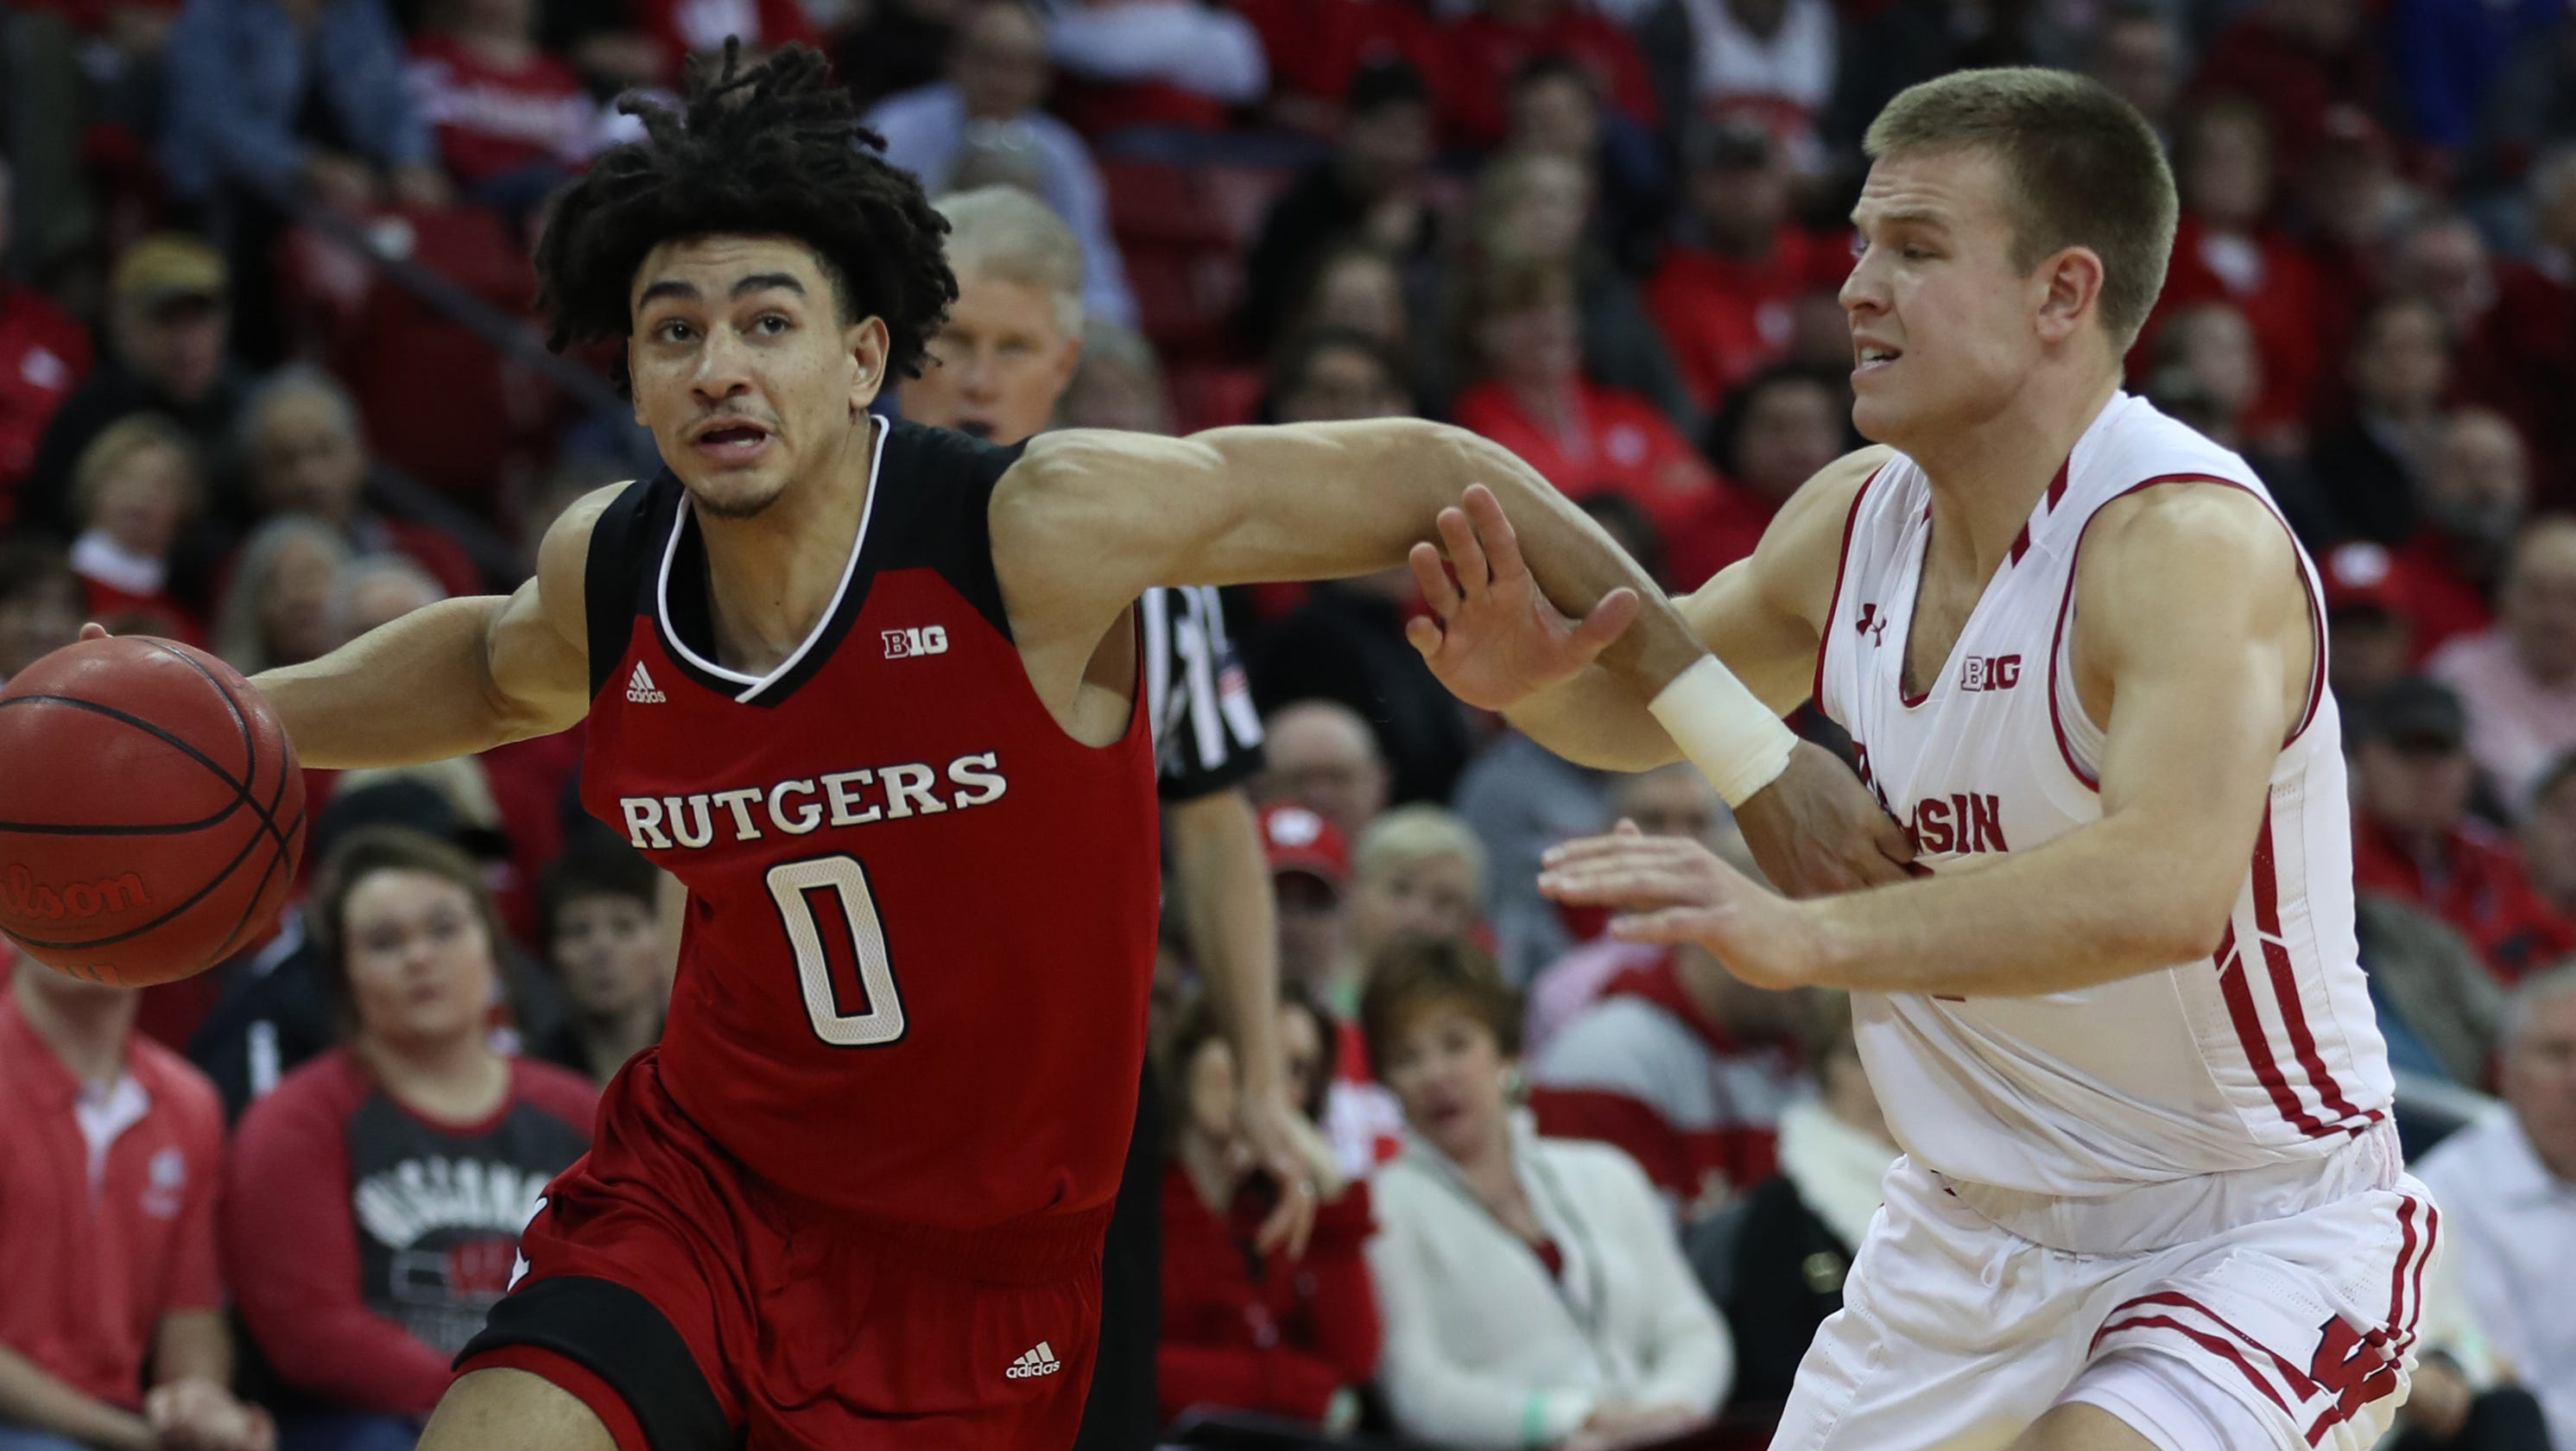 rutgers basketball: hard-fought loss at no. 12 wisconsin